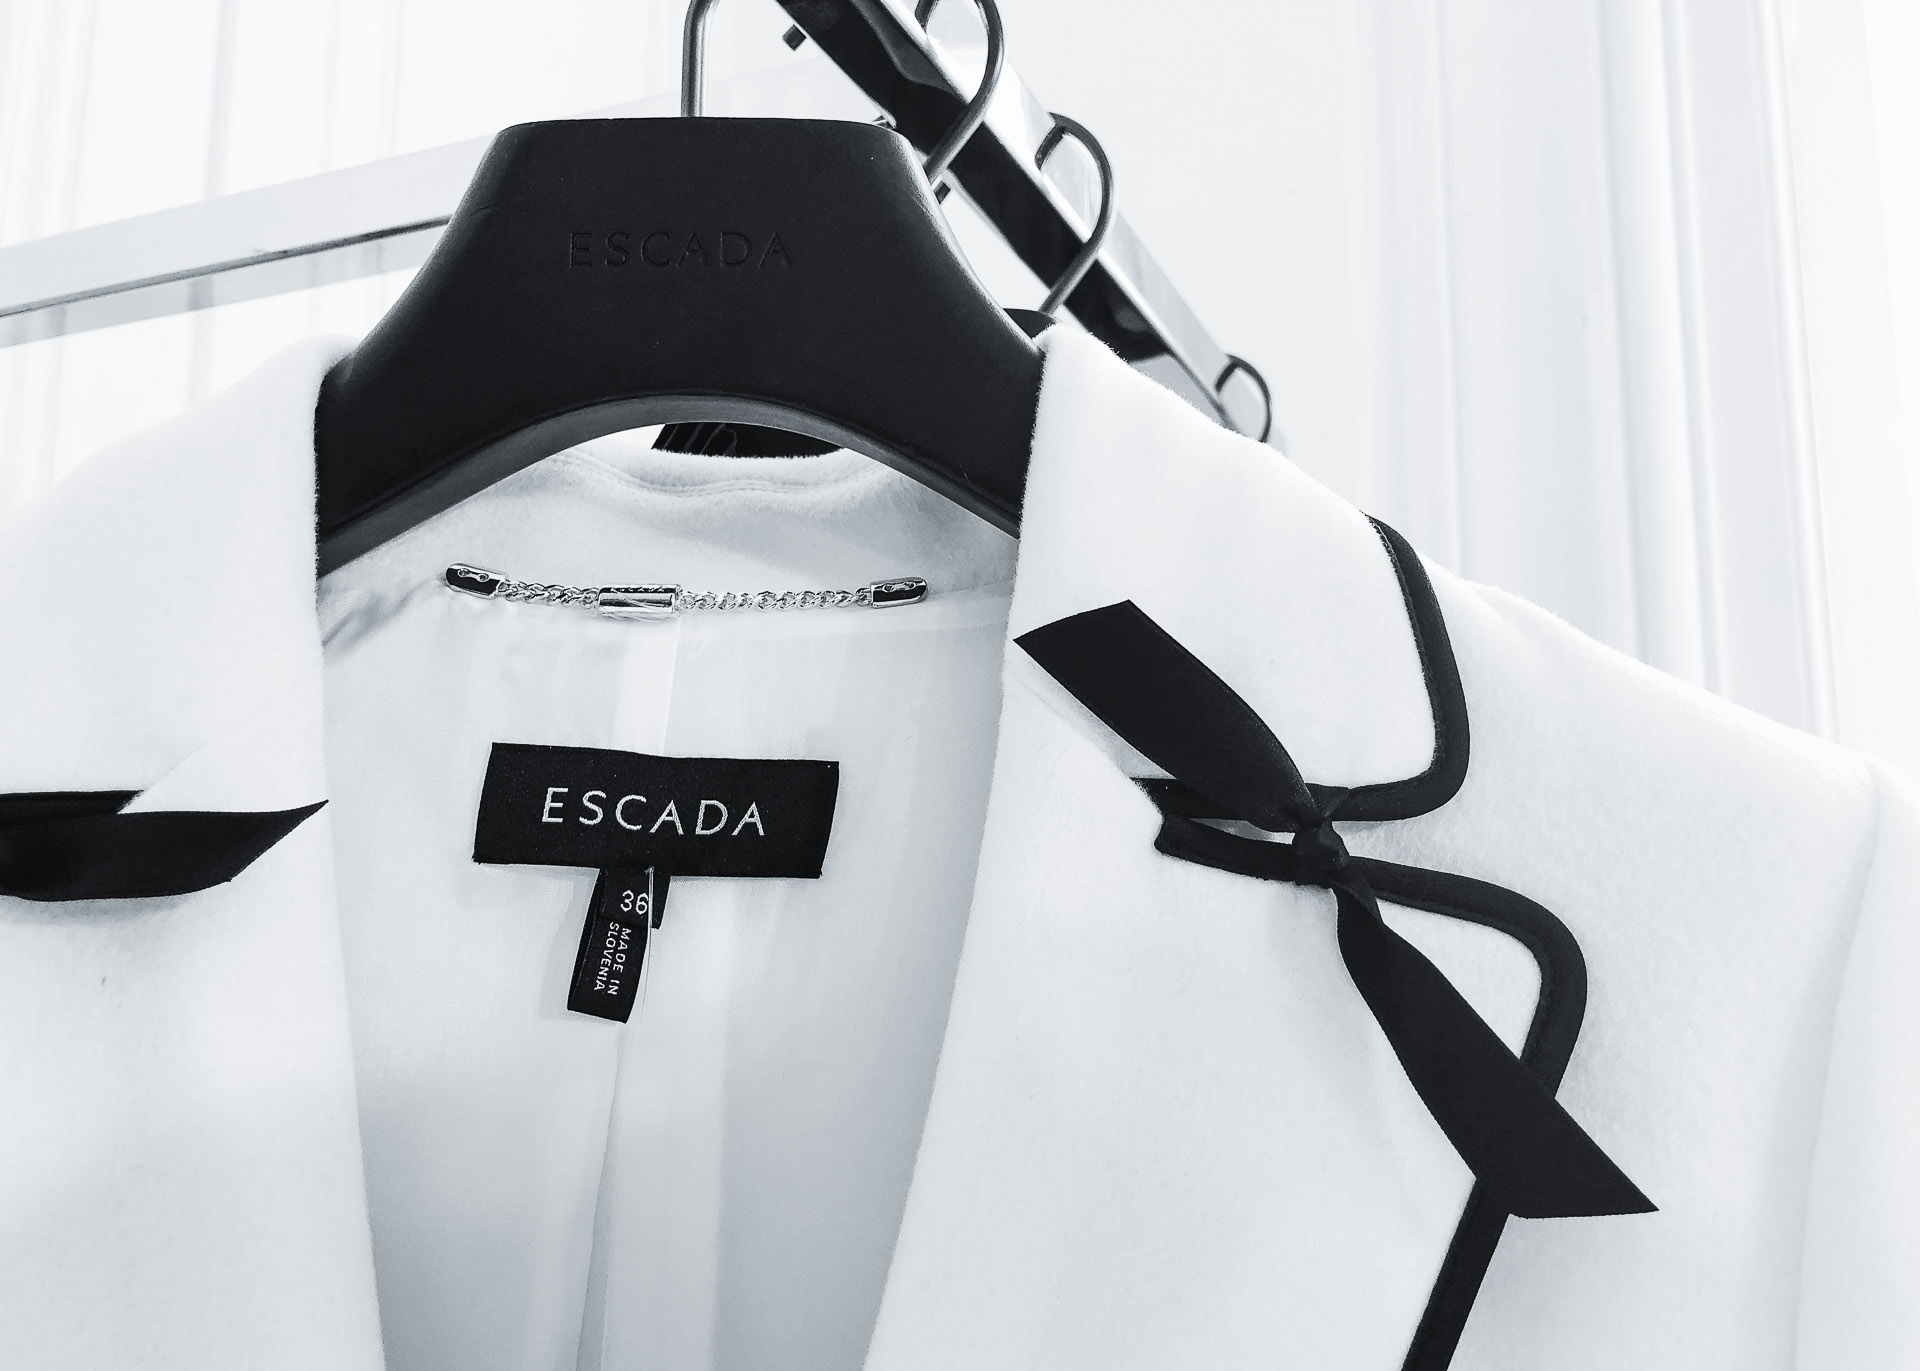 Brunette from Wall Street Escada bow details